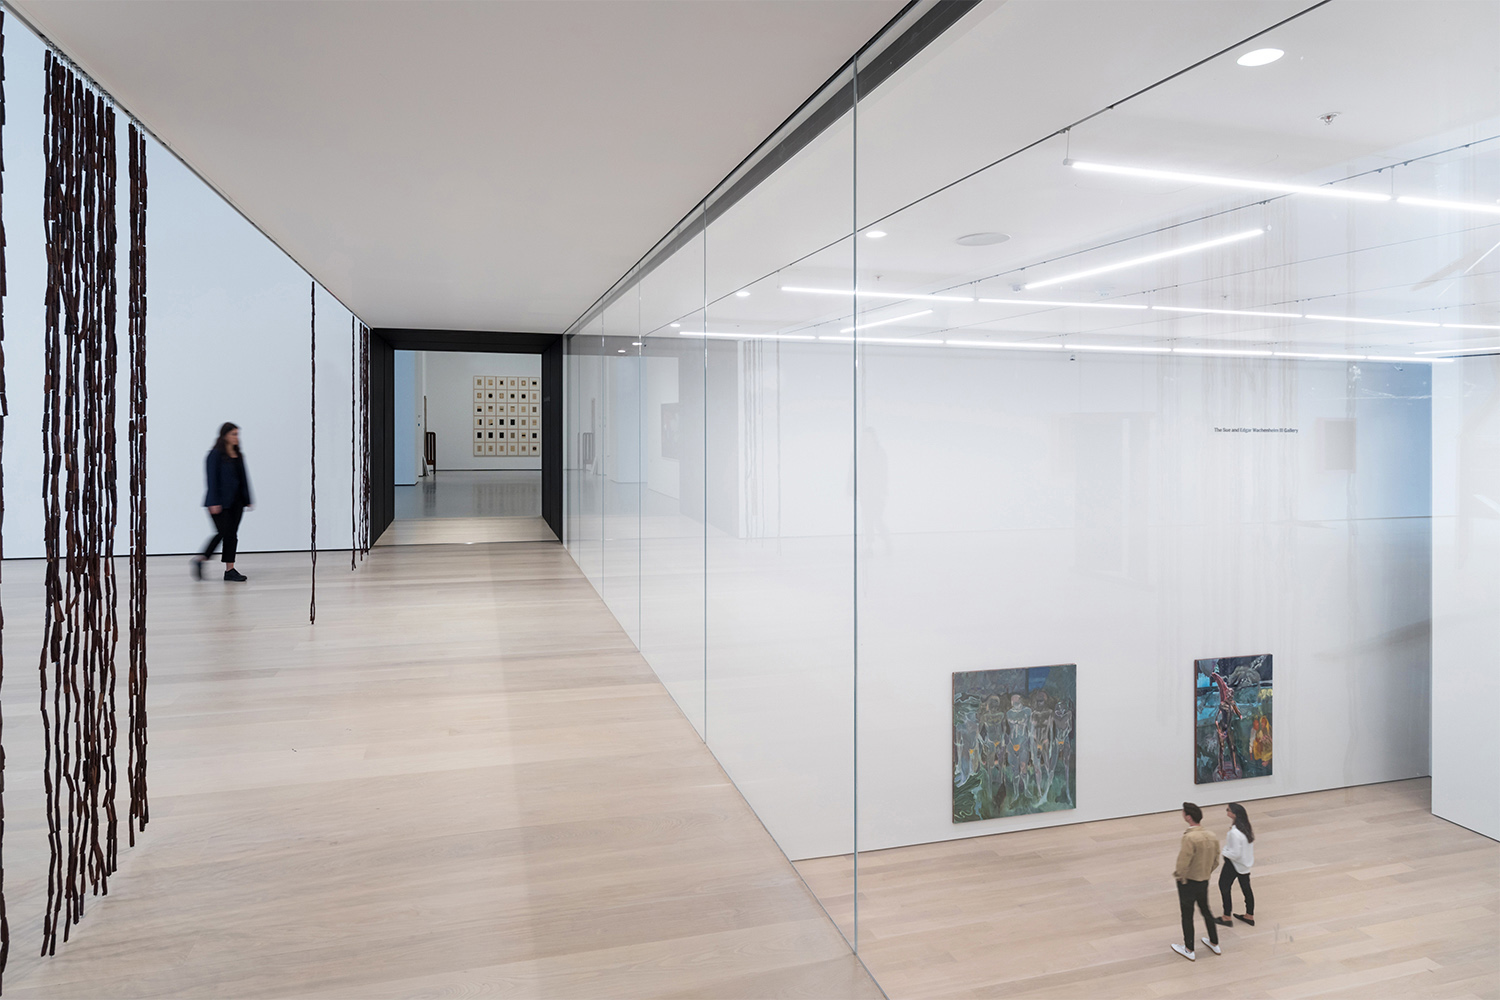 Installation view of Daylit gallery 212, Sheela Gowda's of all people, overlooking Projects Gallery, featuring Projects 110: Michael Armitage, The Museum of Modern Art Photography by Iwan Baan